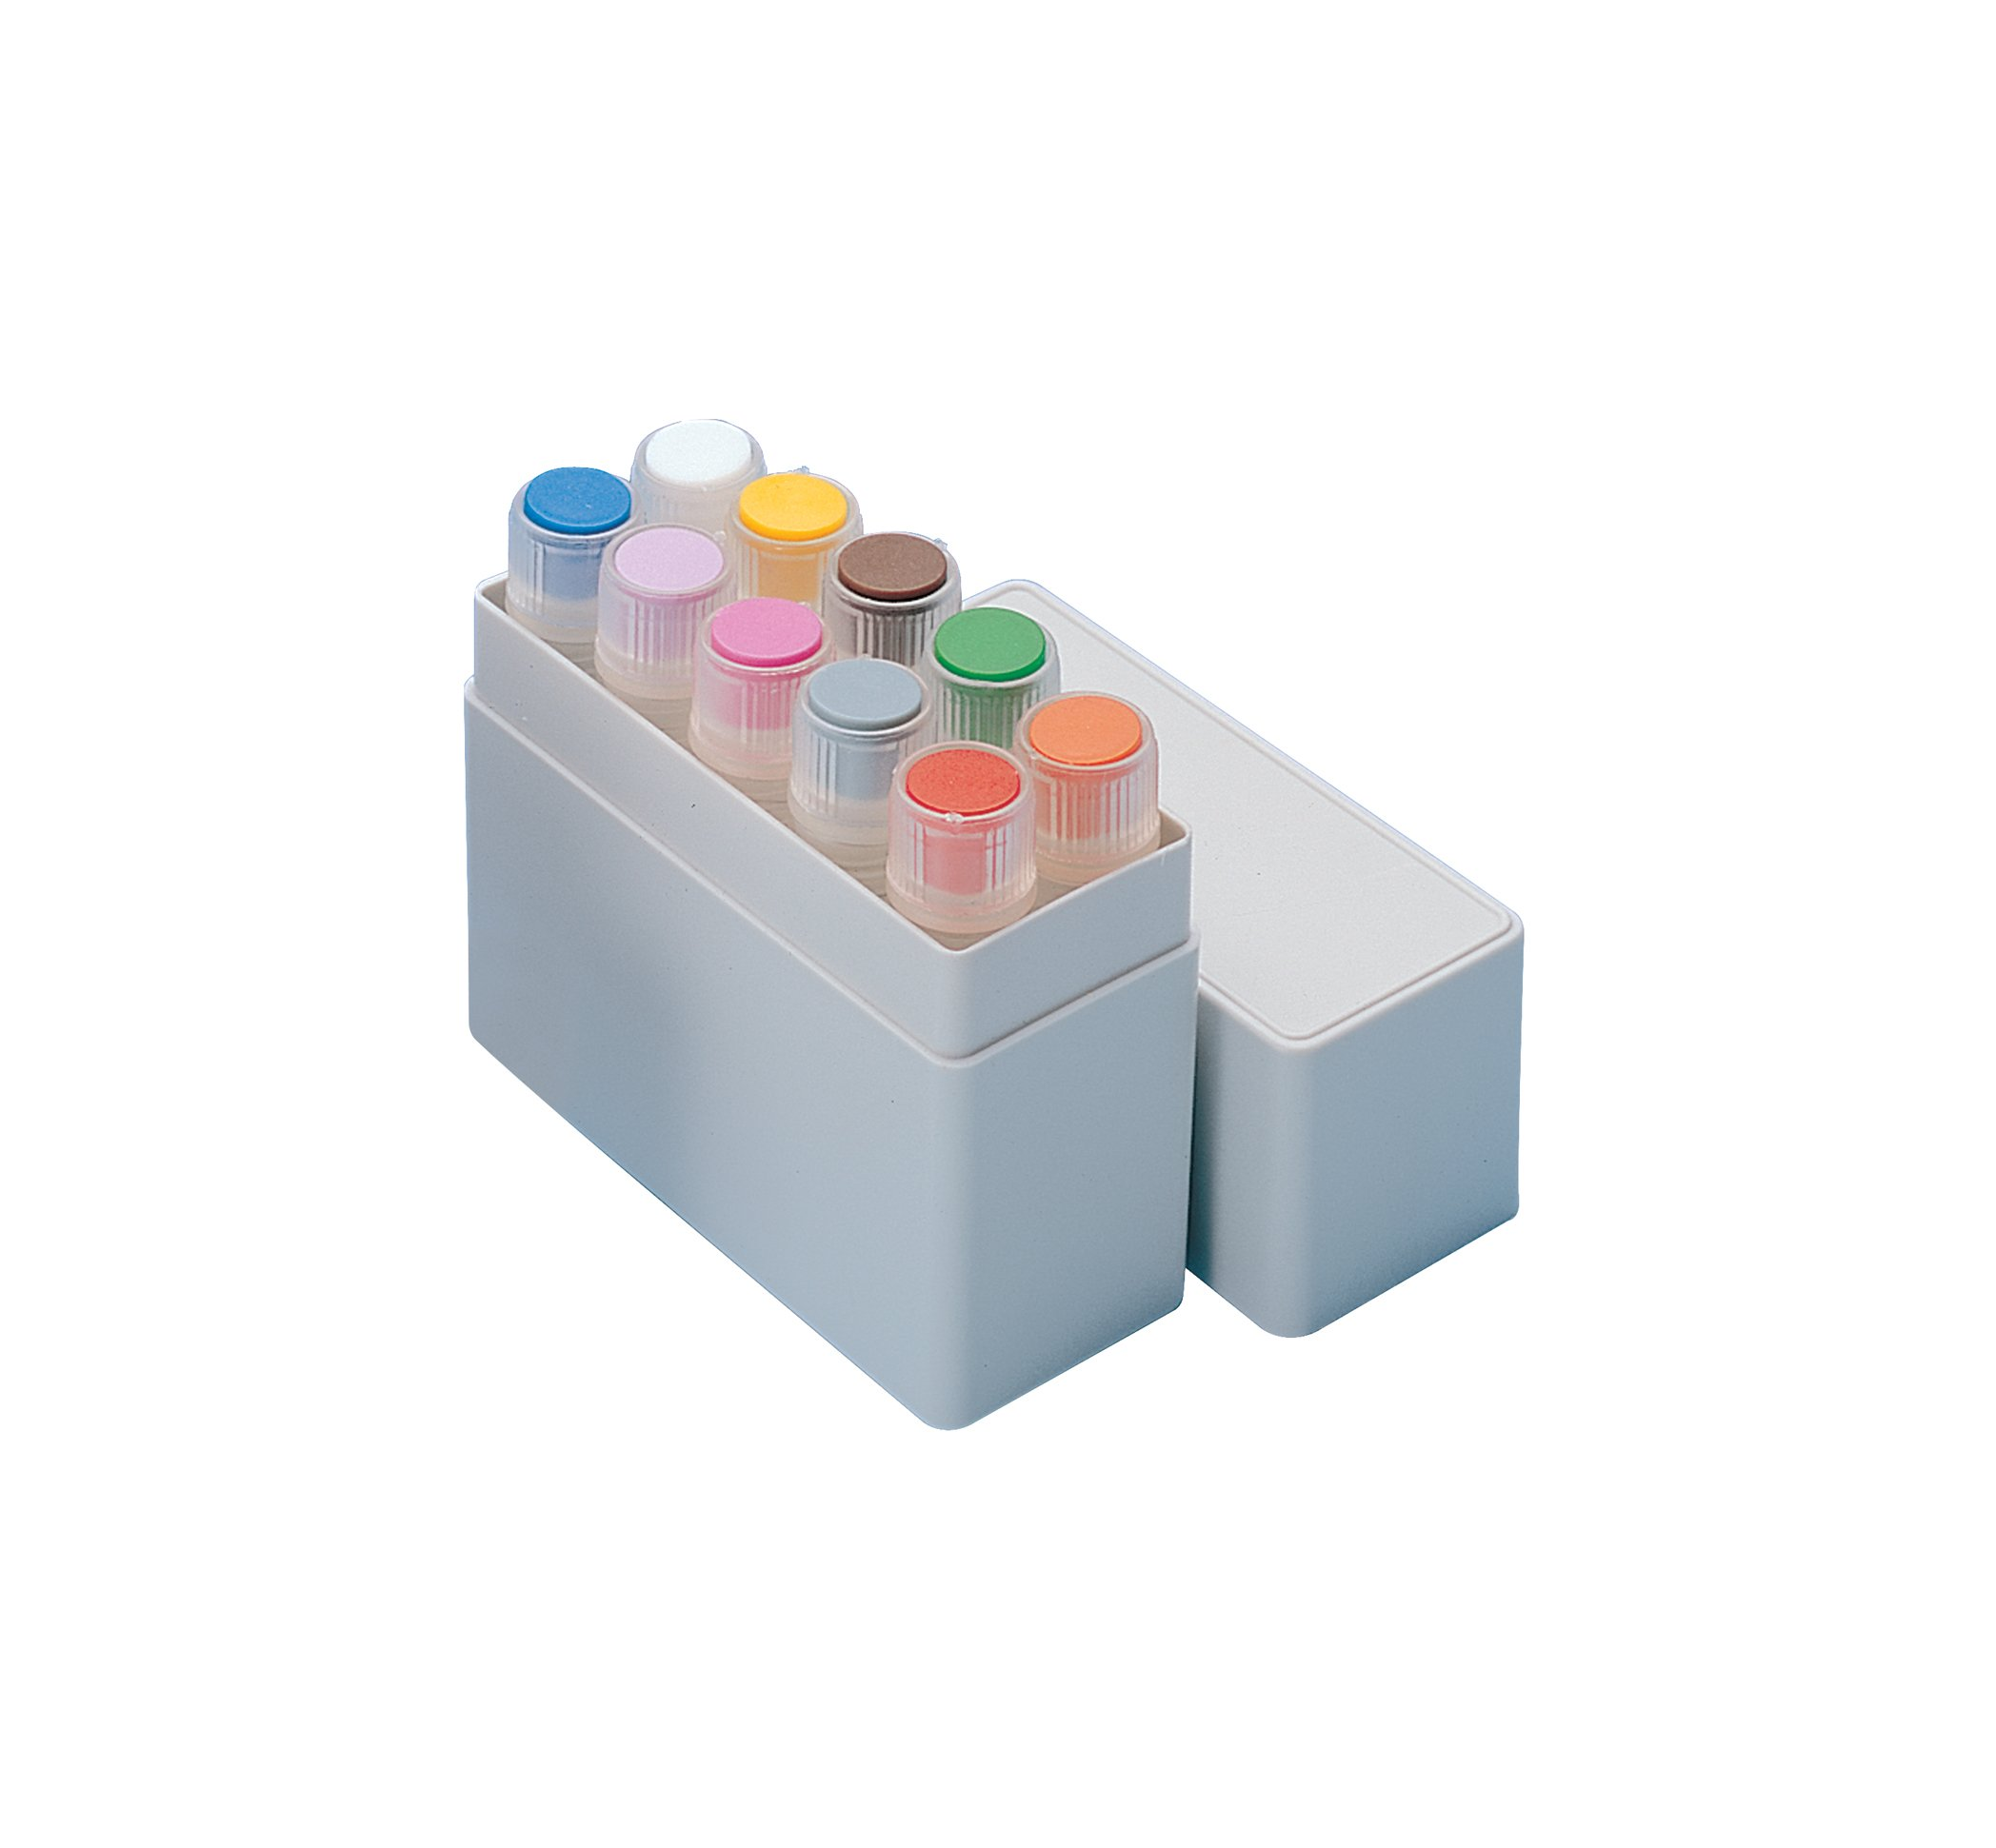 Nunc HIPS MiniBoxes for CryoTubes, Can hold 10 vial, 1.0ml - 1.8ml Capacity (Case of 200)